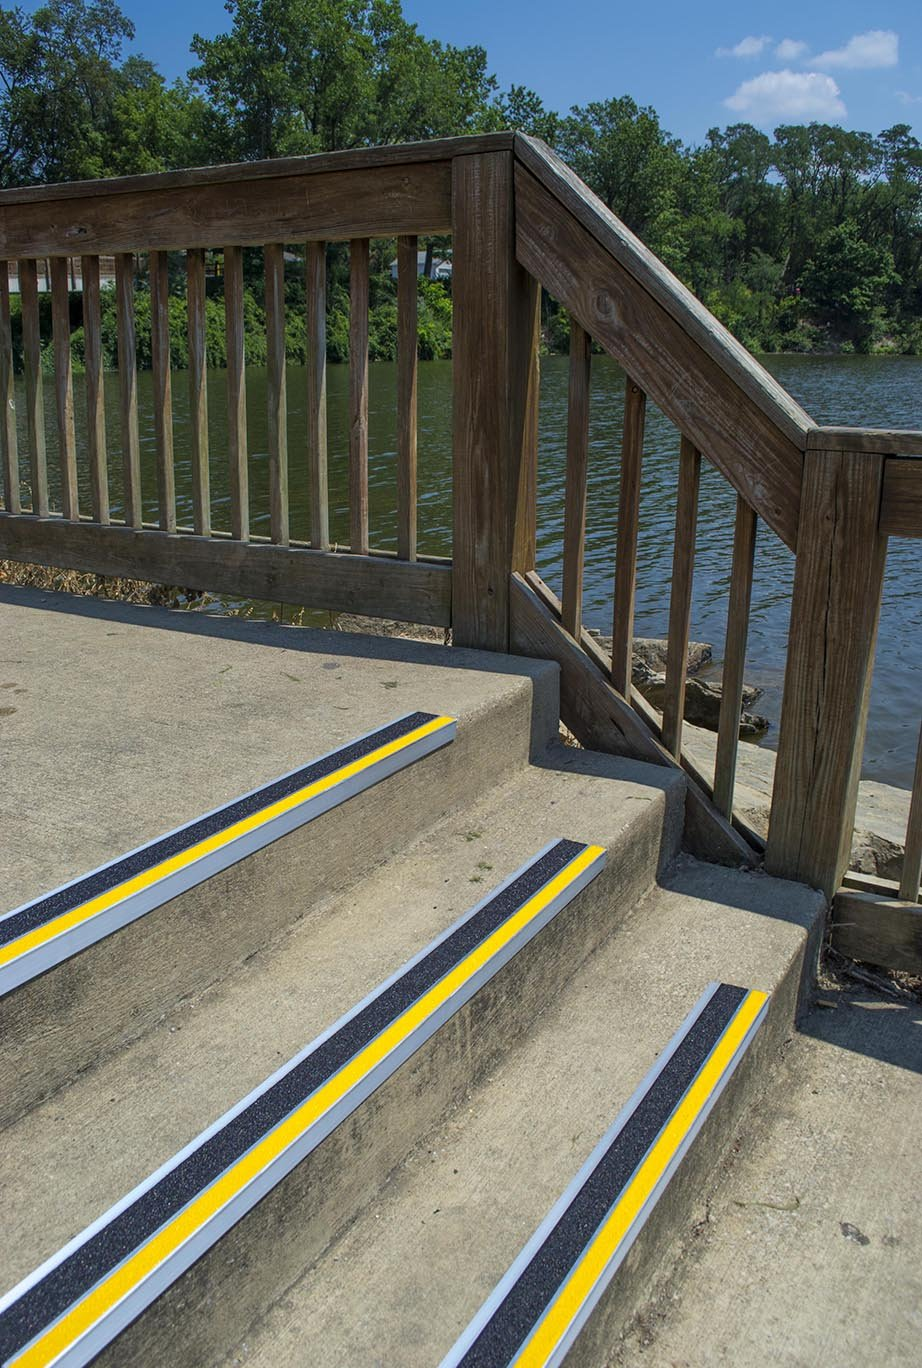 MASTER STOP 404NS20036102 Renovation Stair Tread, Yellow Front, Black Back, 4'' depth, 36'' length, Aluminum with mineral abrasive anti-slip surface